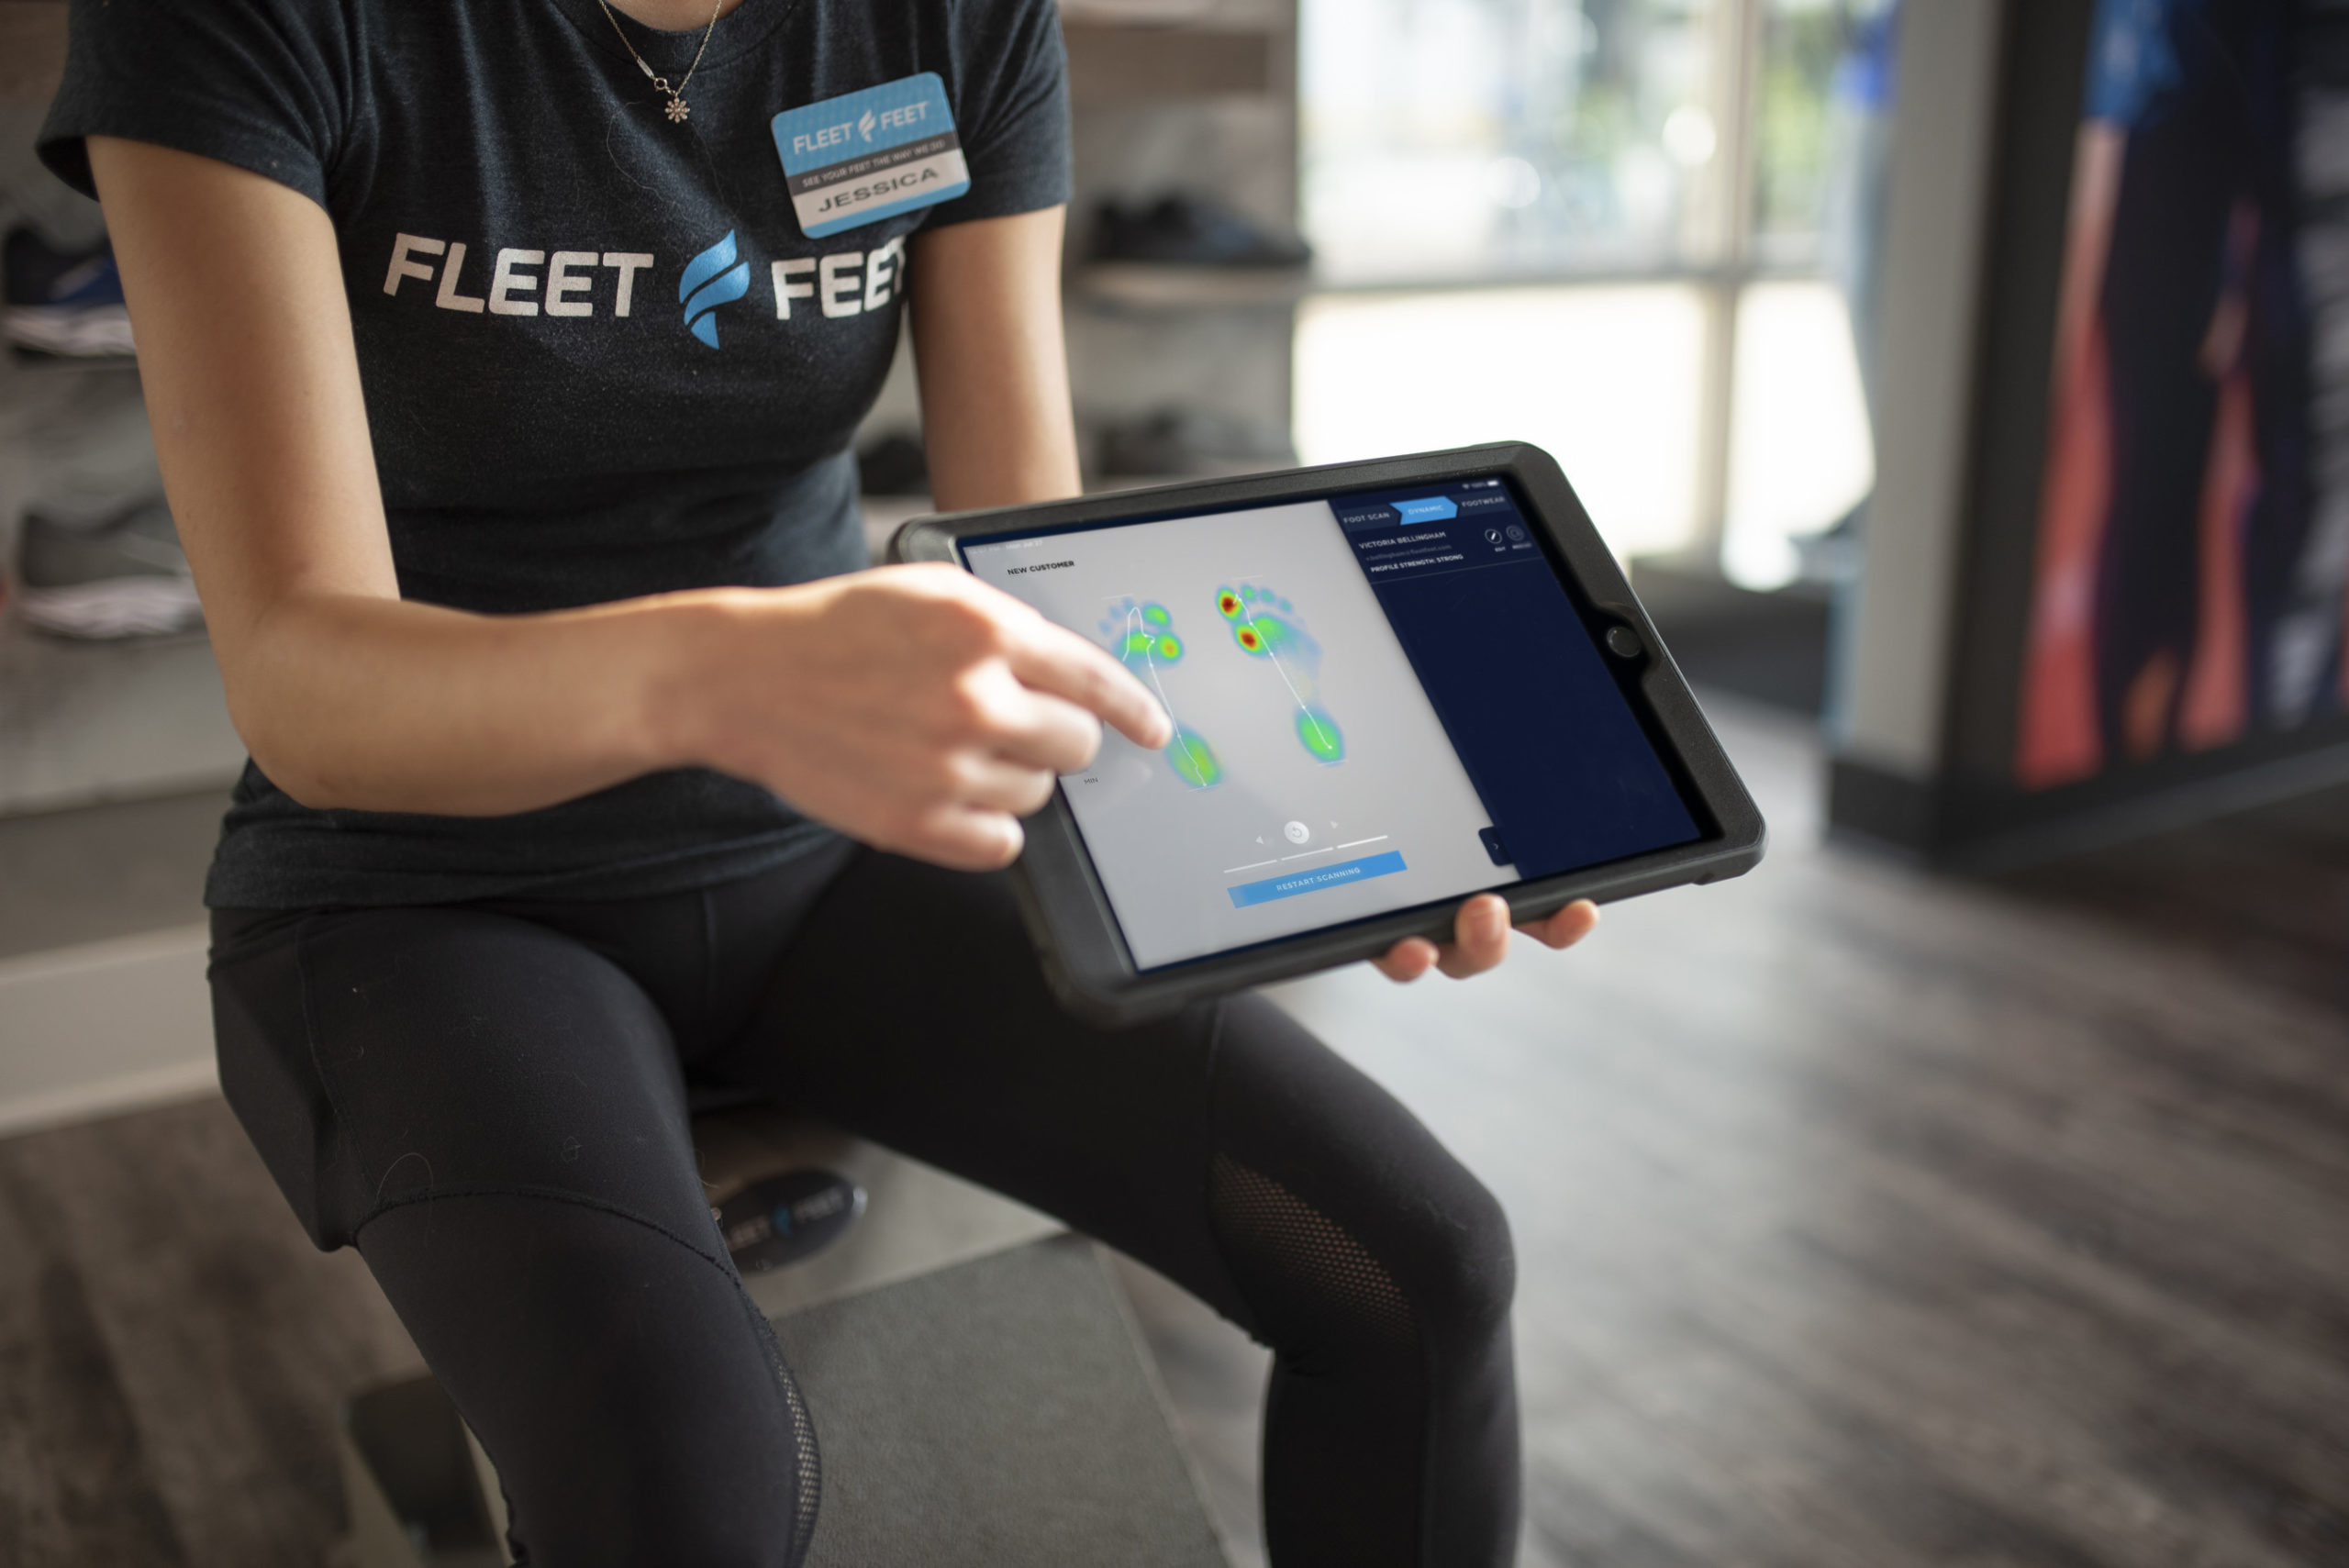 In partnership with Volumental, Fleet Feet has evolved its 3D foot scanning process to develop individualized insoles for its customers.